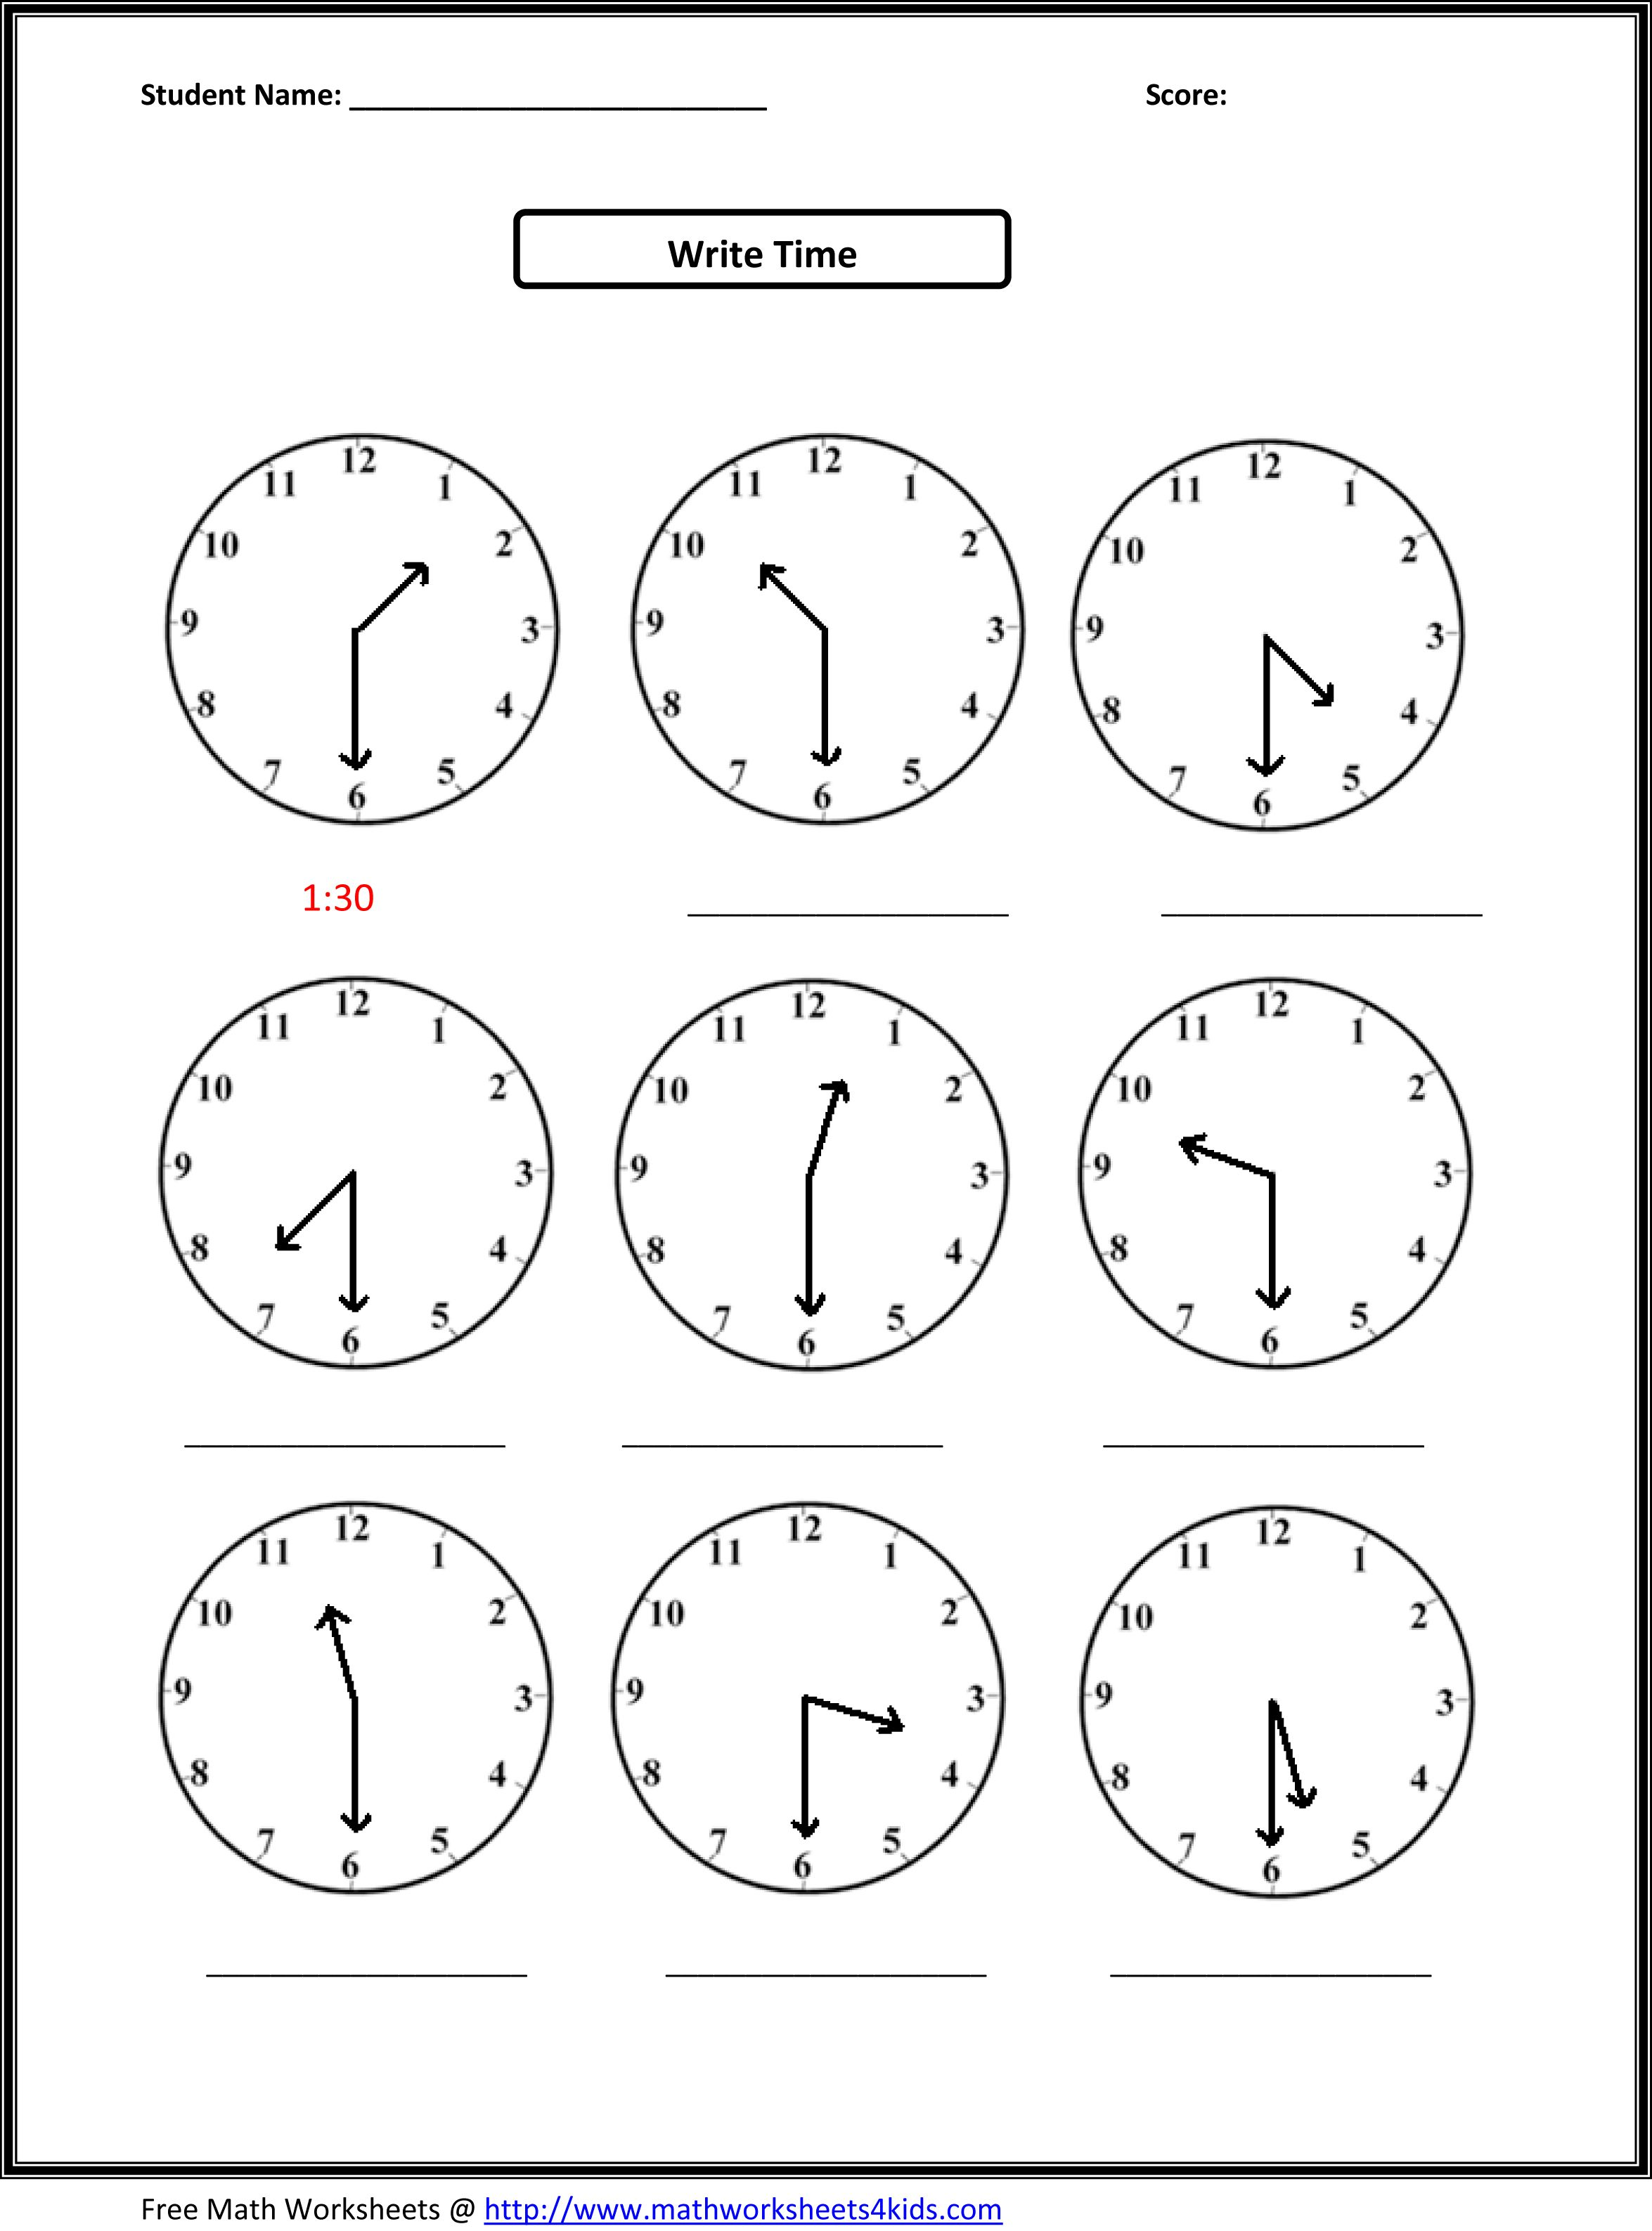 Proatmealus  Gorgeous Worksheet On Time For Grade   Reocurent With Exciting Free Printable Telling Time Worksheets Nd Grade  Reocurent With Comely Bible Study Worksheet Also Easily Confused Words Worksheet In Addition Loop Through Worksheets Vba And Present Progressive Tense Worksheets As Well As Factoring Quadratic Equations Worksheets Additionally Cooking Measurement Worksheets From Reocurentcom With Proatmealus  Exciting Worksheet On Time For Grade   Reocurent With Comely Free Printable Telling Time Worksheets Nd Grade  Reocurent And Gorgeous Bible Study Worksheet Also Easily Confused Words Worksheet In Addition Loop Through Worksheets Vba From Reocurentcom